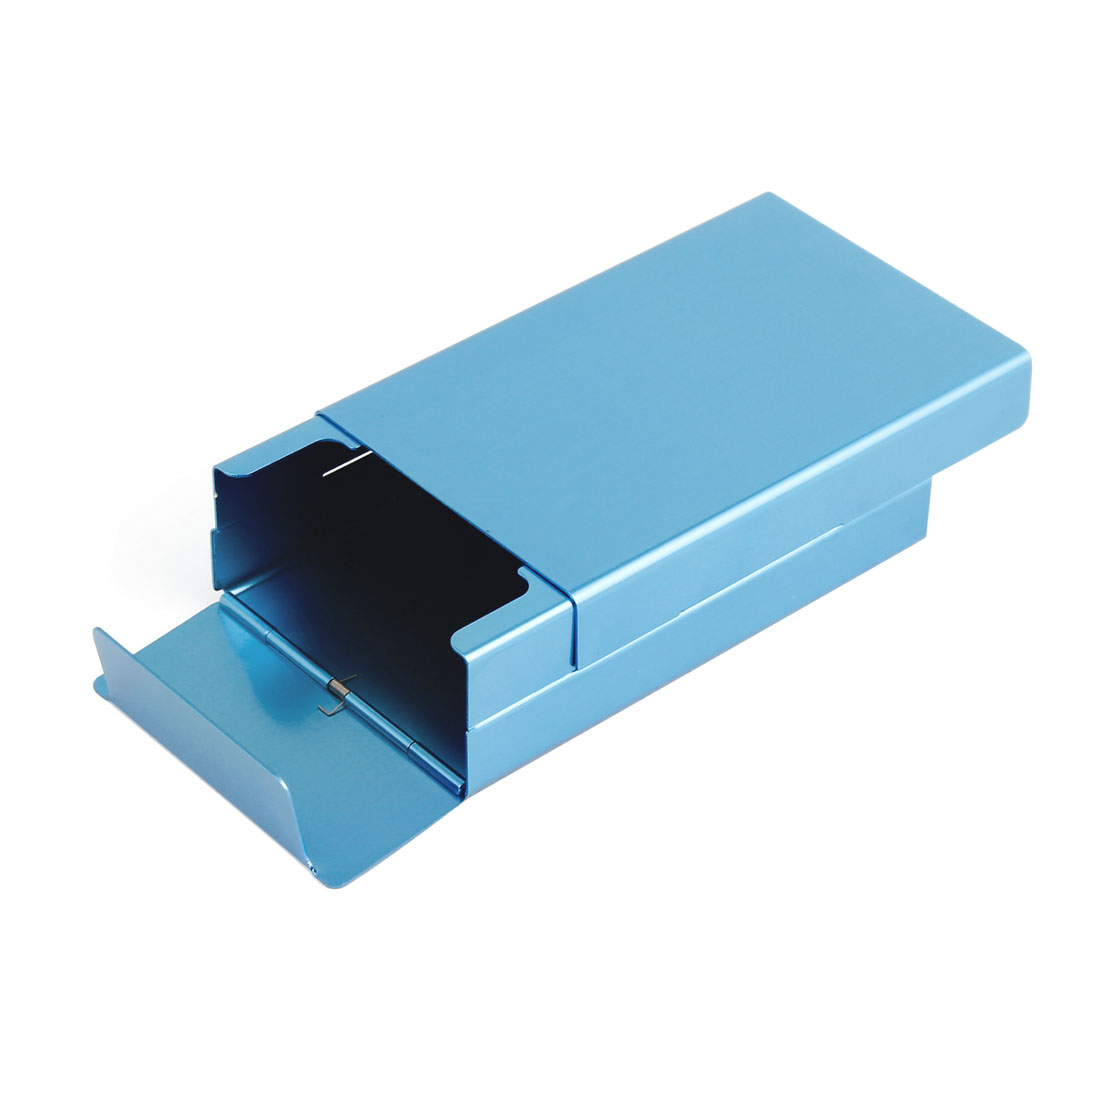 Slide Type Blue Aluminum Rectangle Shape Cigarette Cigar Case Box